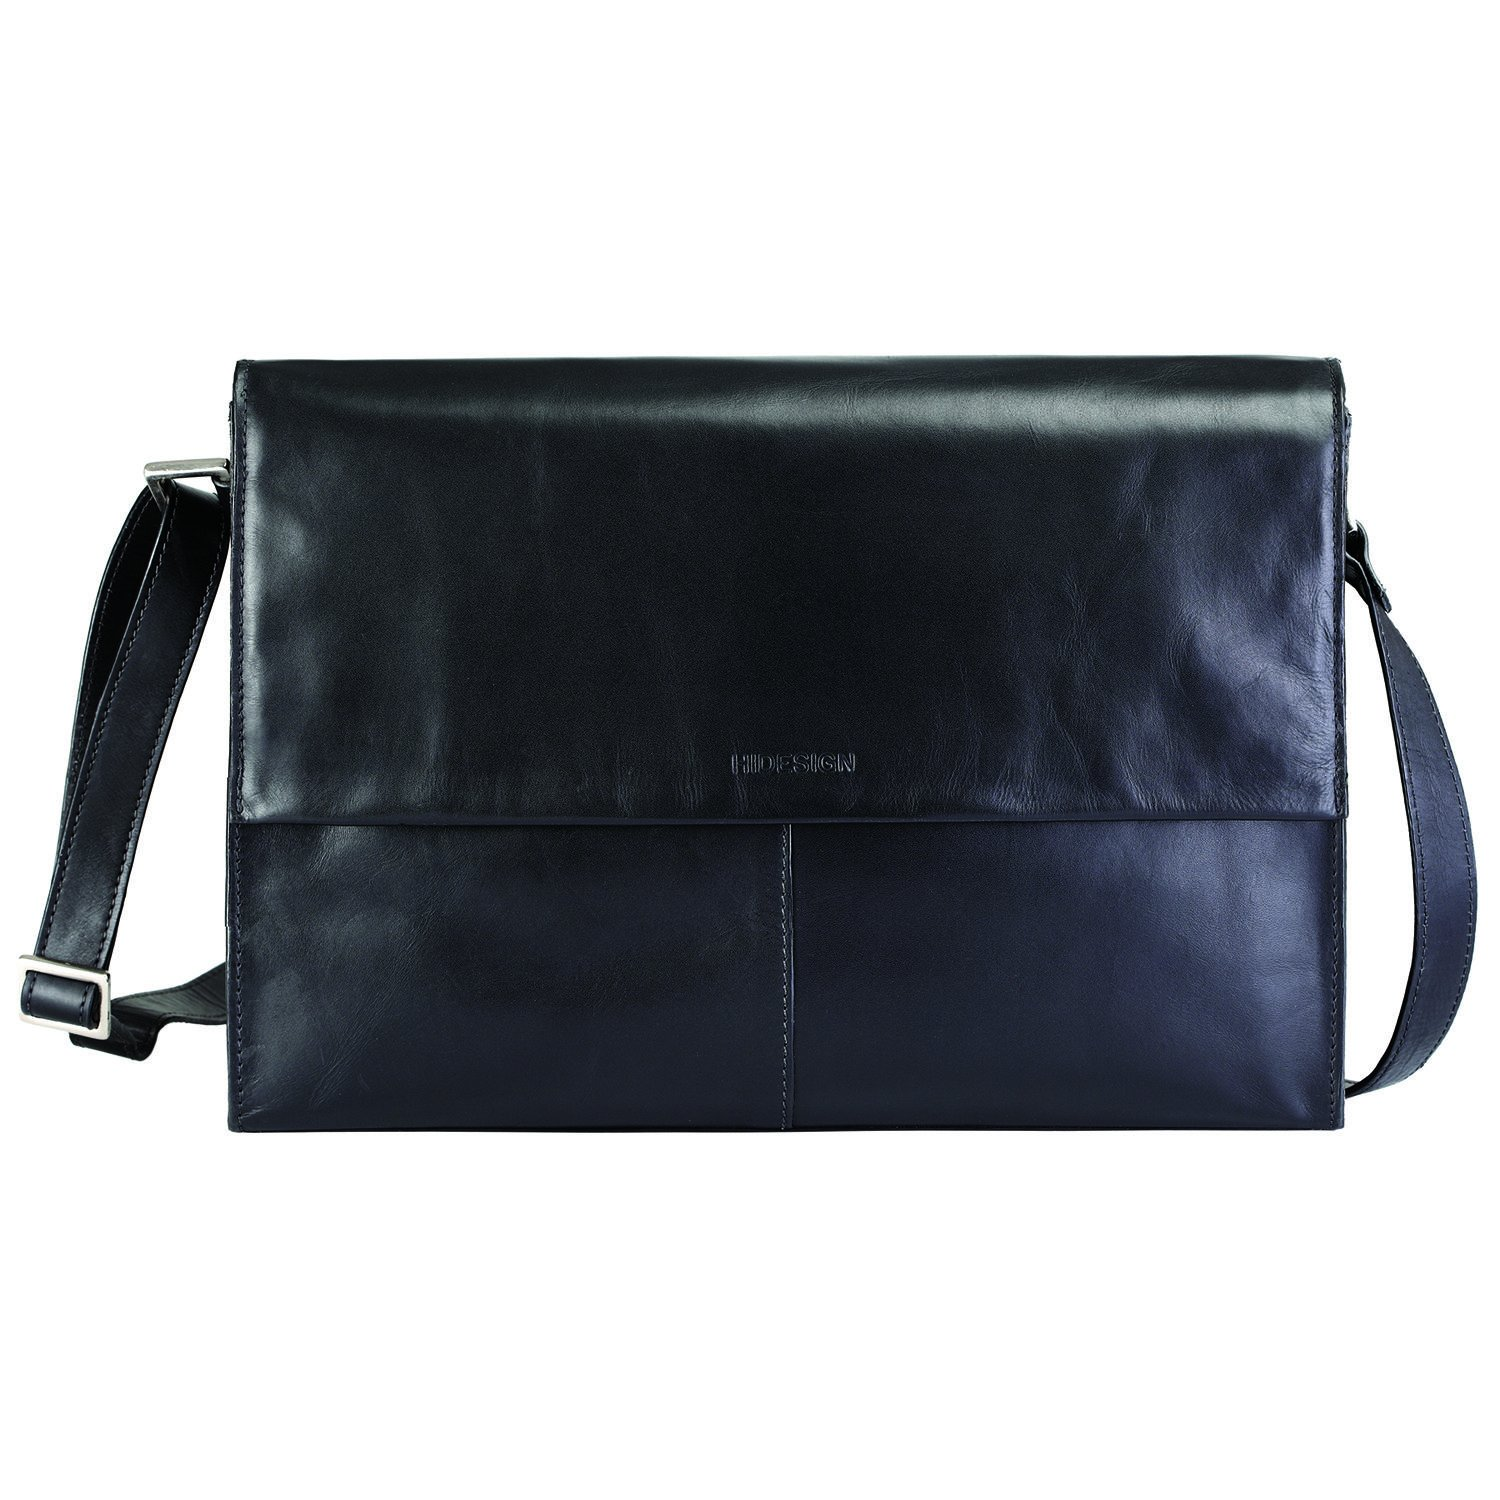 Scully Hidesign Leather Brief